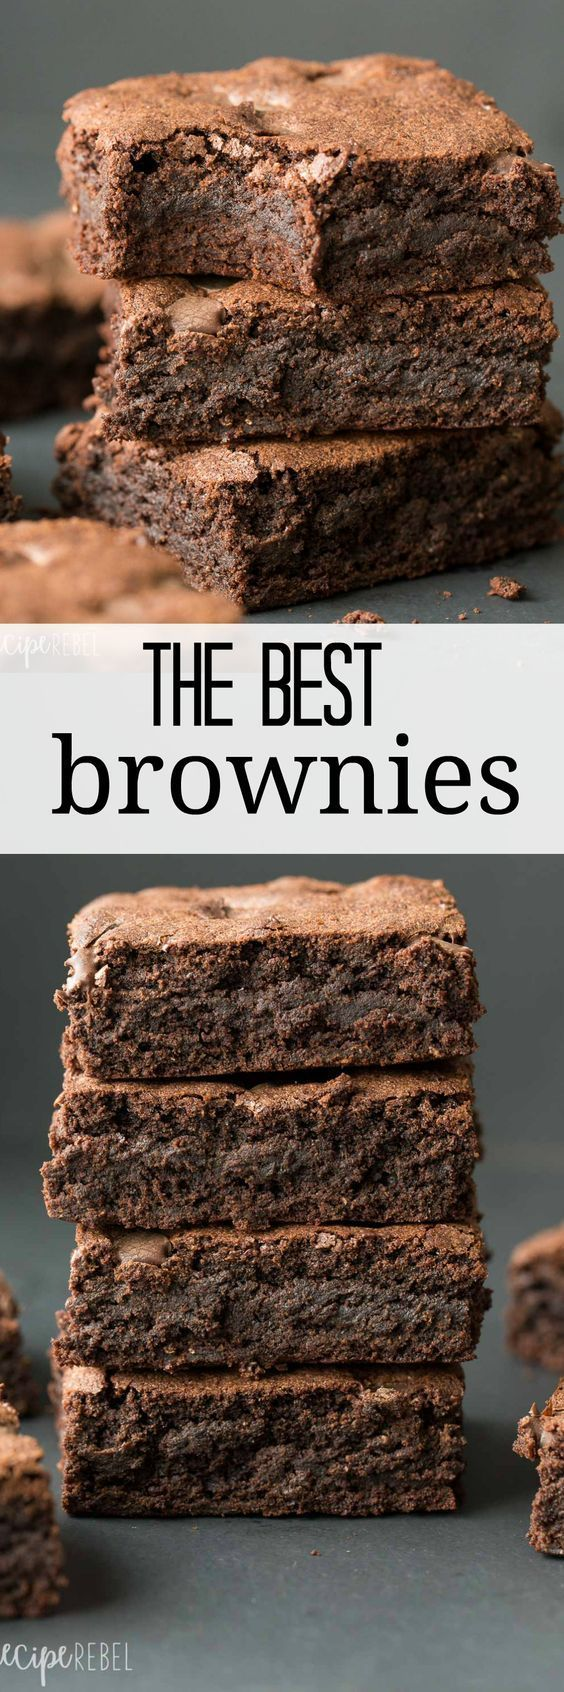 Perfectly rich, dense, fudgy brownies every time. They are so easy and come together with just a bowl and a whisk.